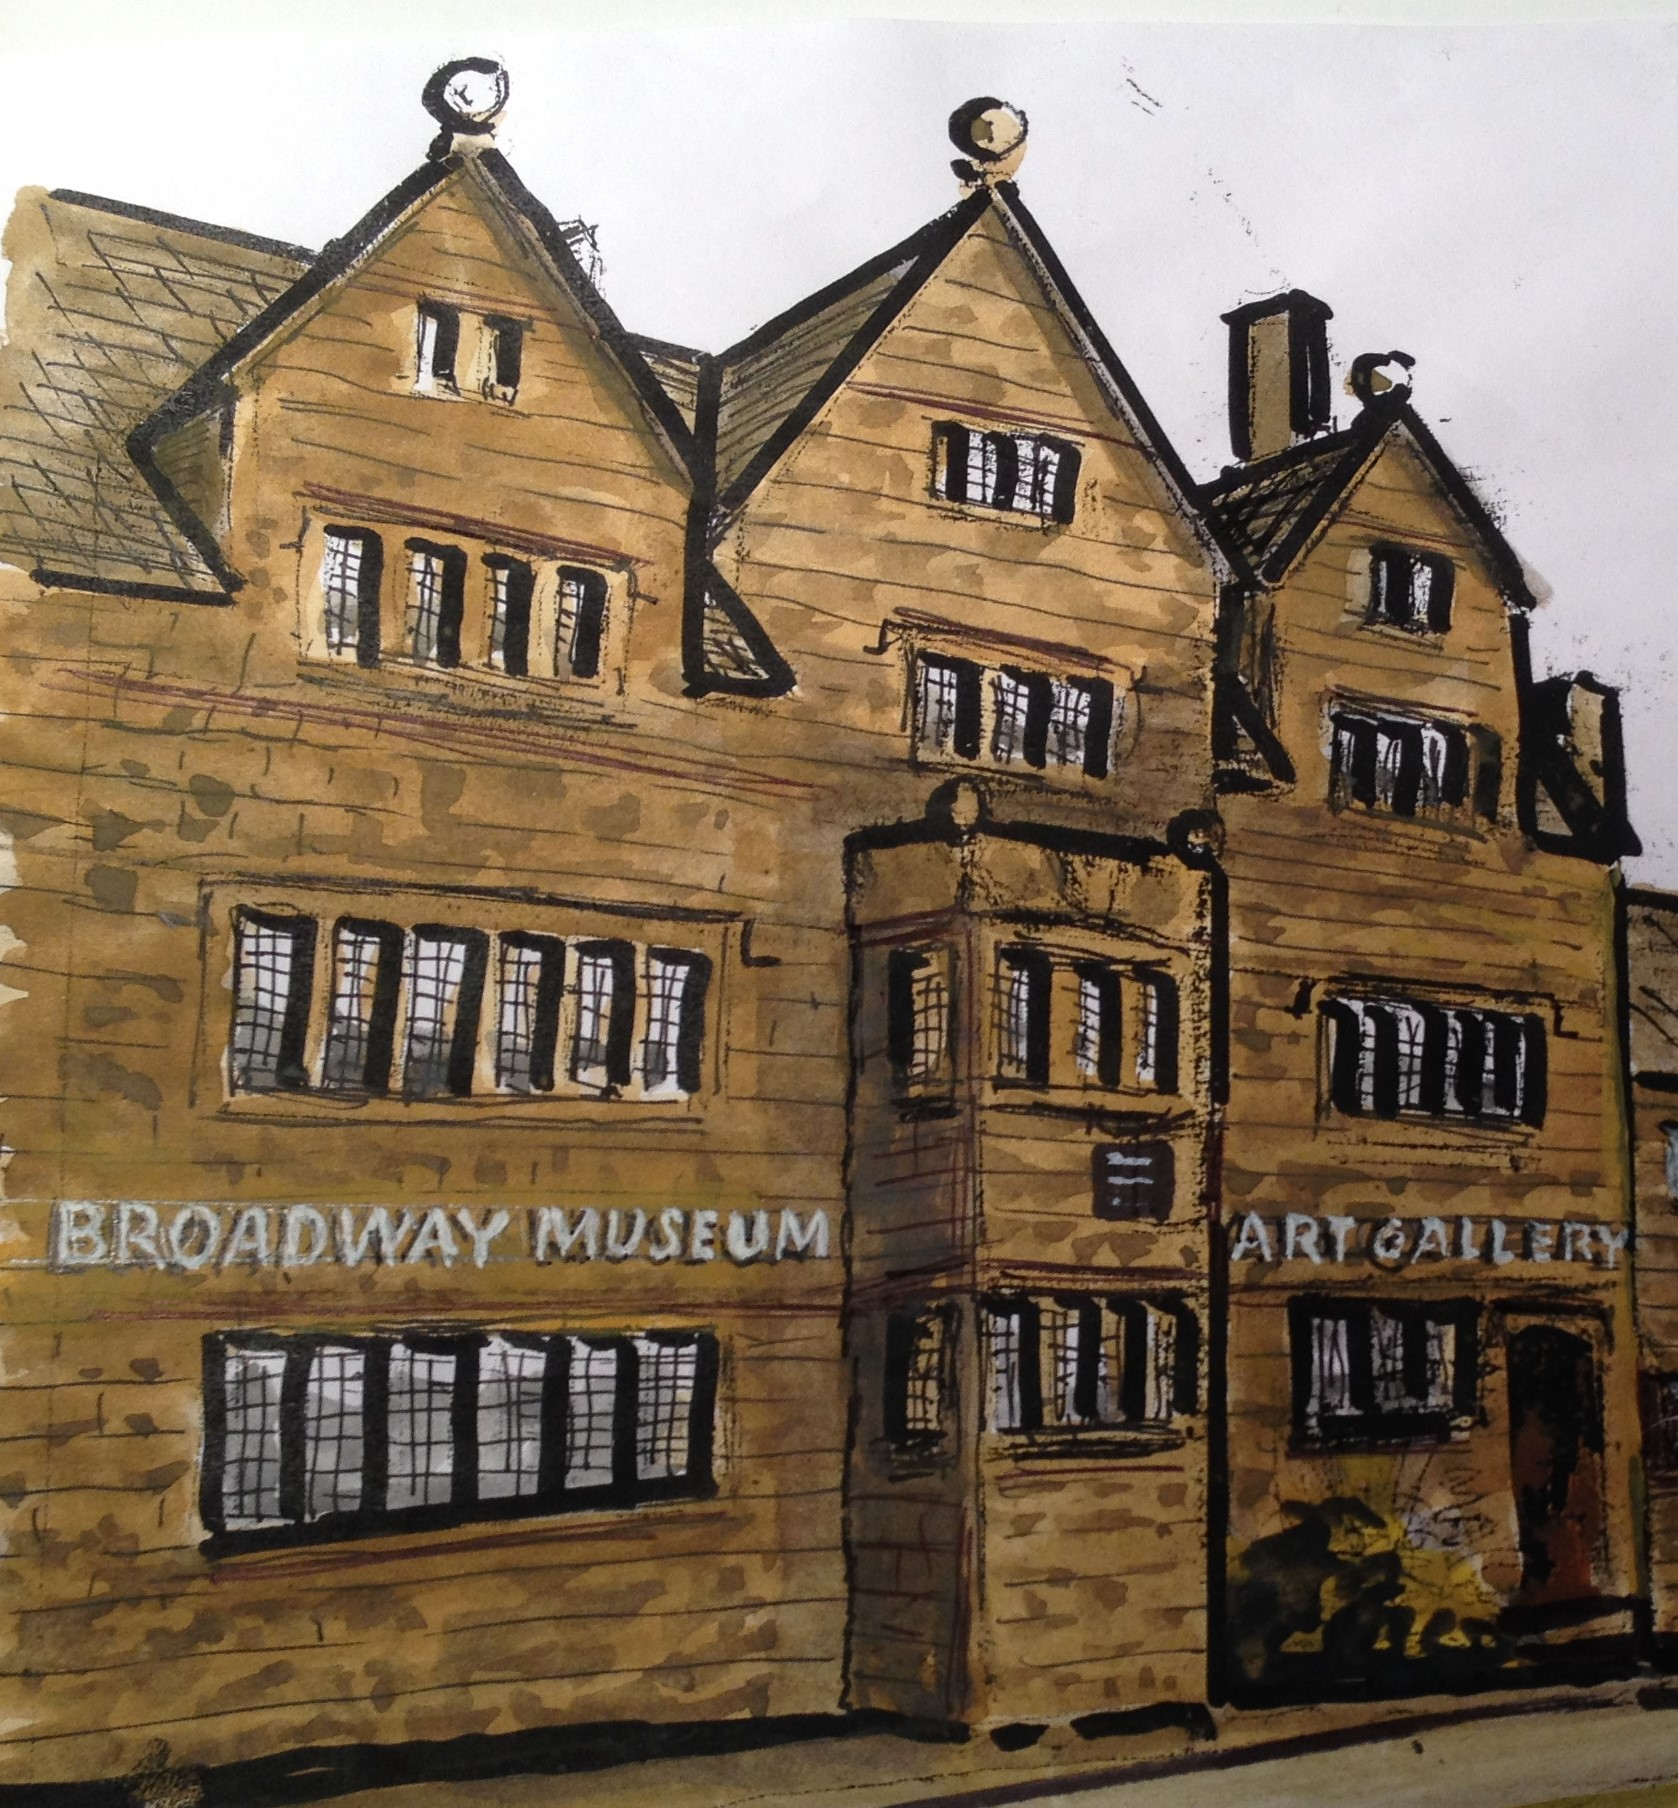 Broadway Museum and Art Gallery